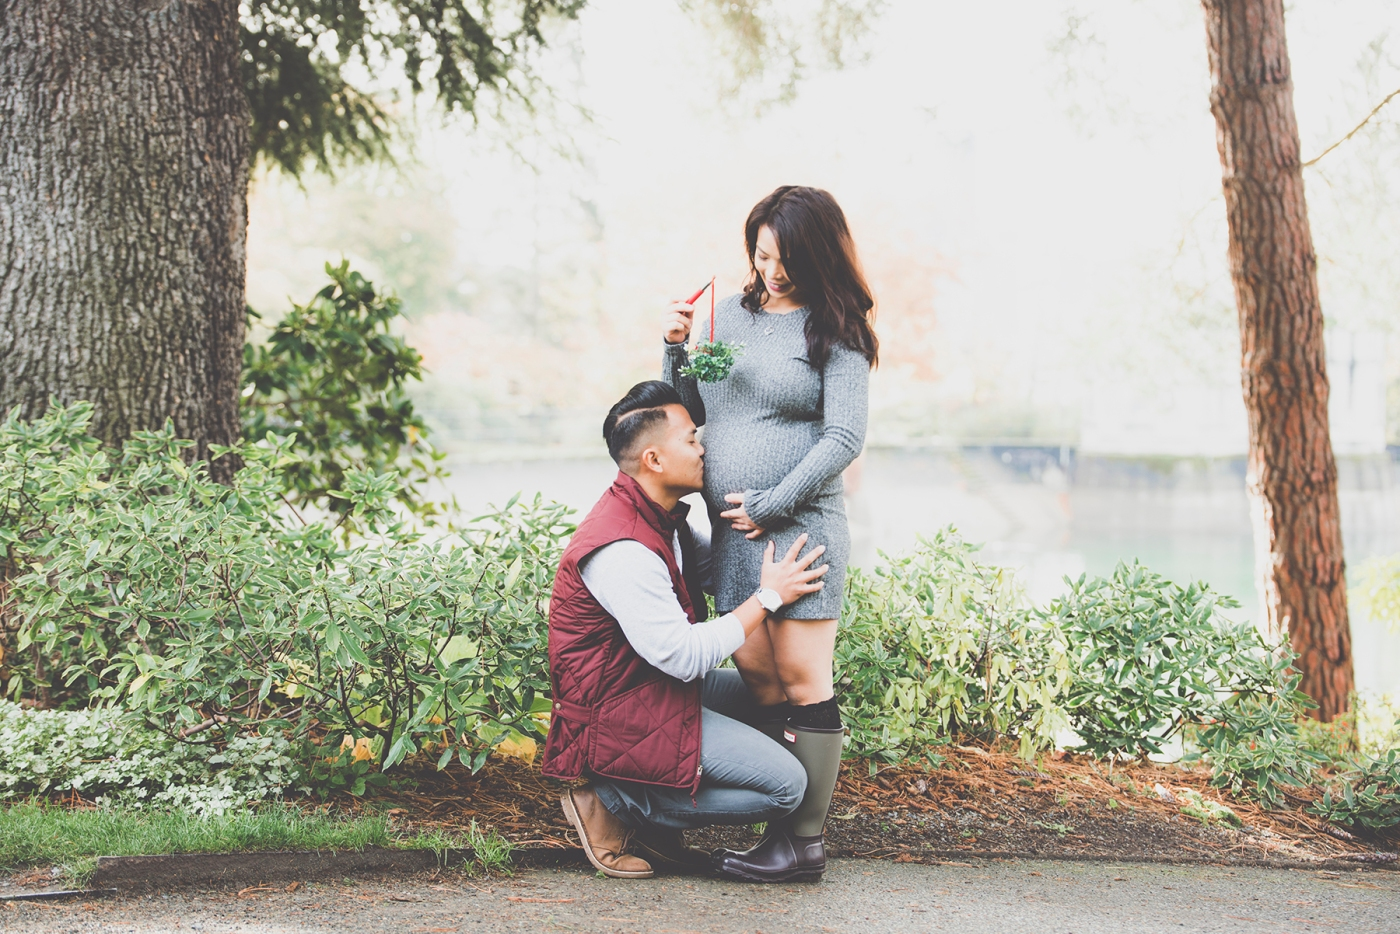 paula_p_maternity_the_royal_squirrel_seattle_family_photographer_2016_dsc_8062